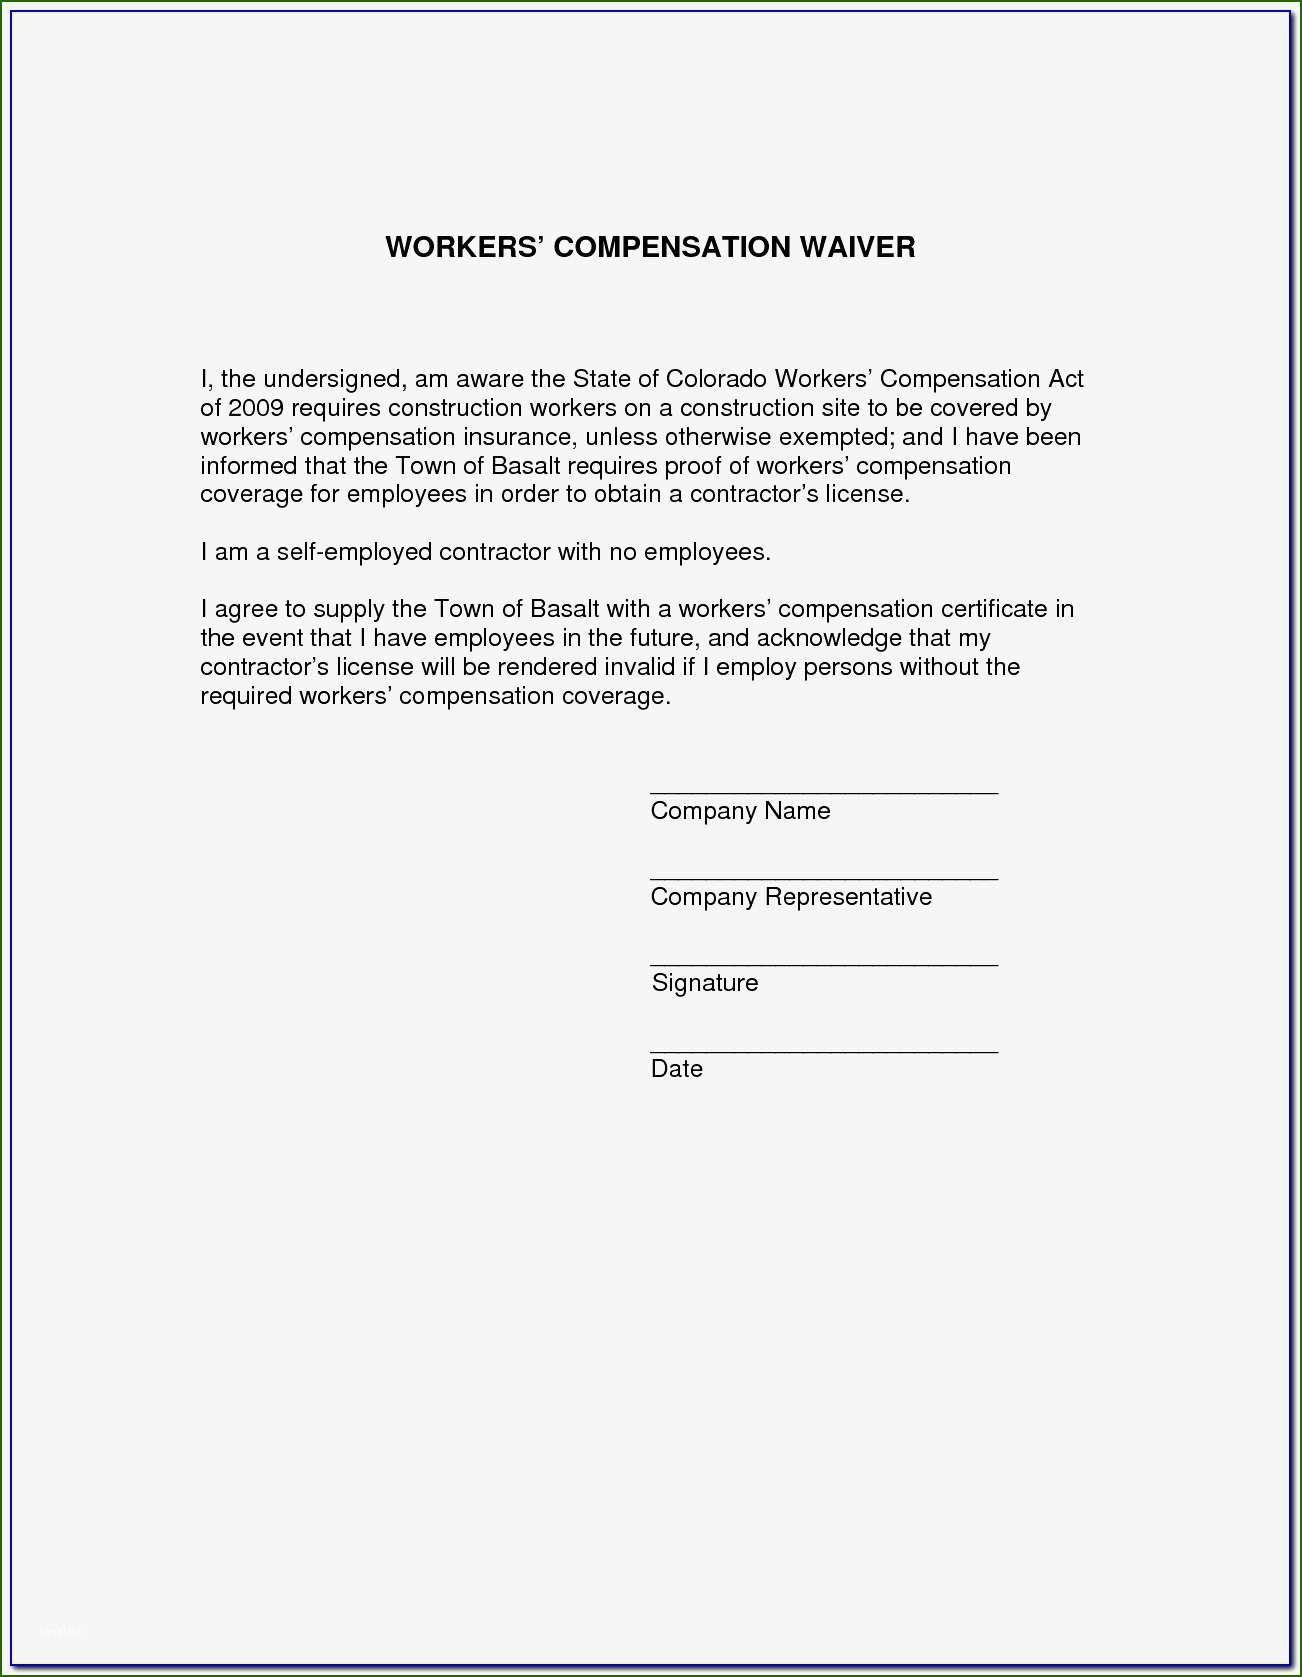 19 Phenomenal Waiver Of Subrogation Template that Will Wow